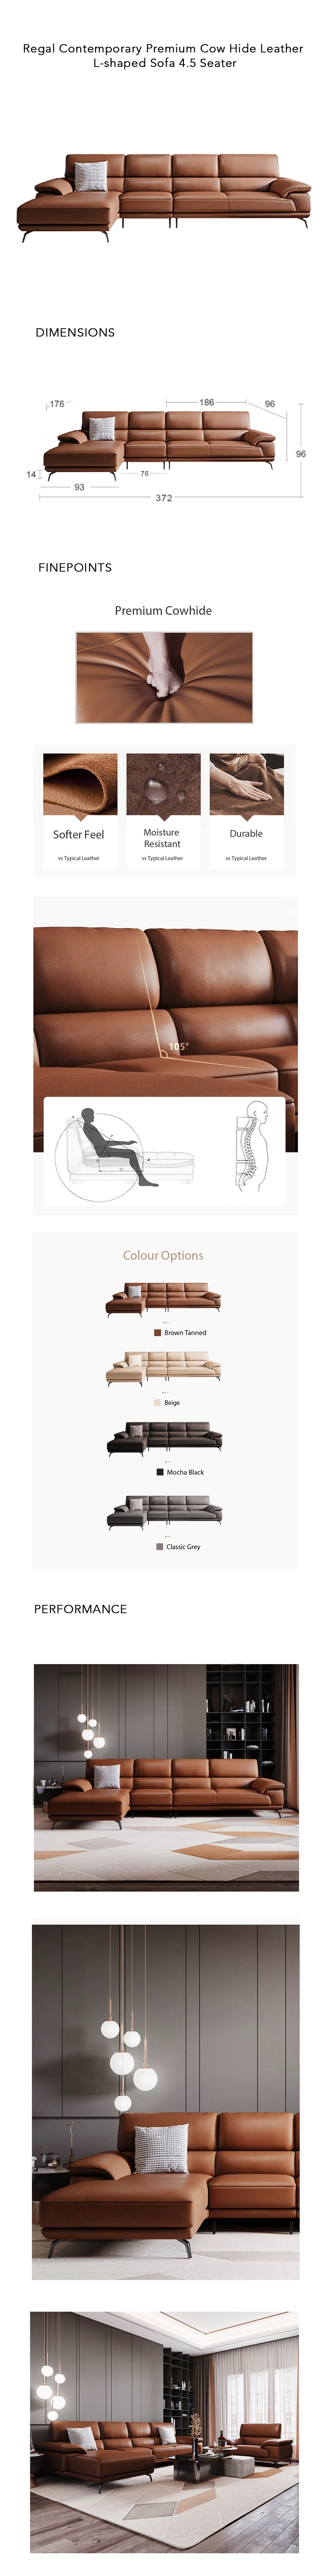 regal-contemporary-cow-hide-l-shape-leather-specifications